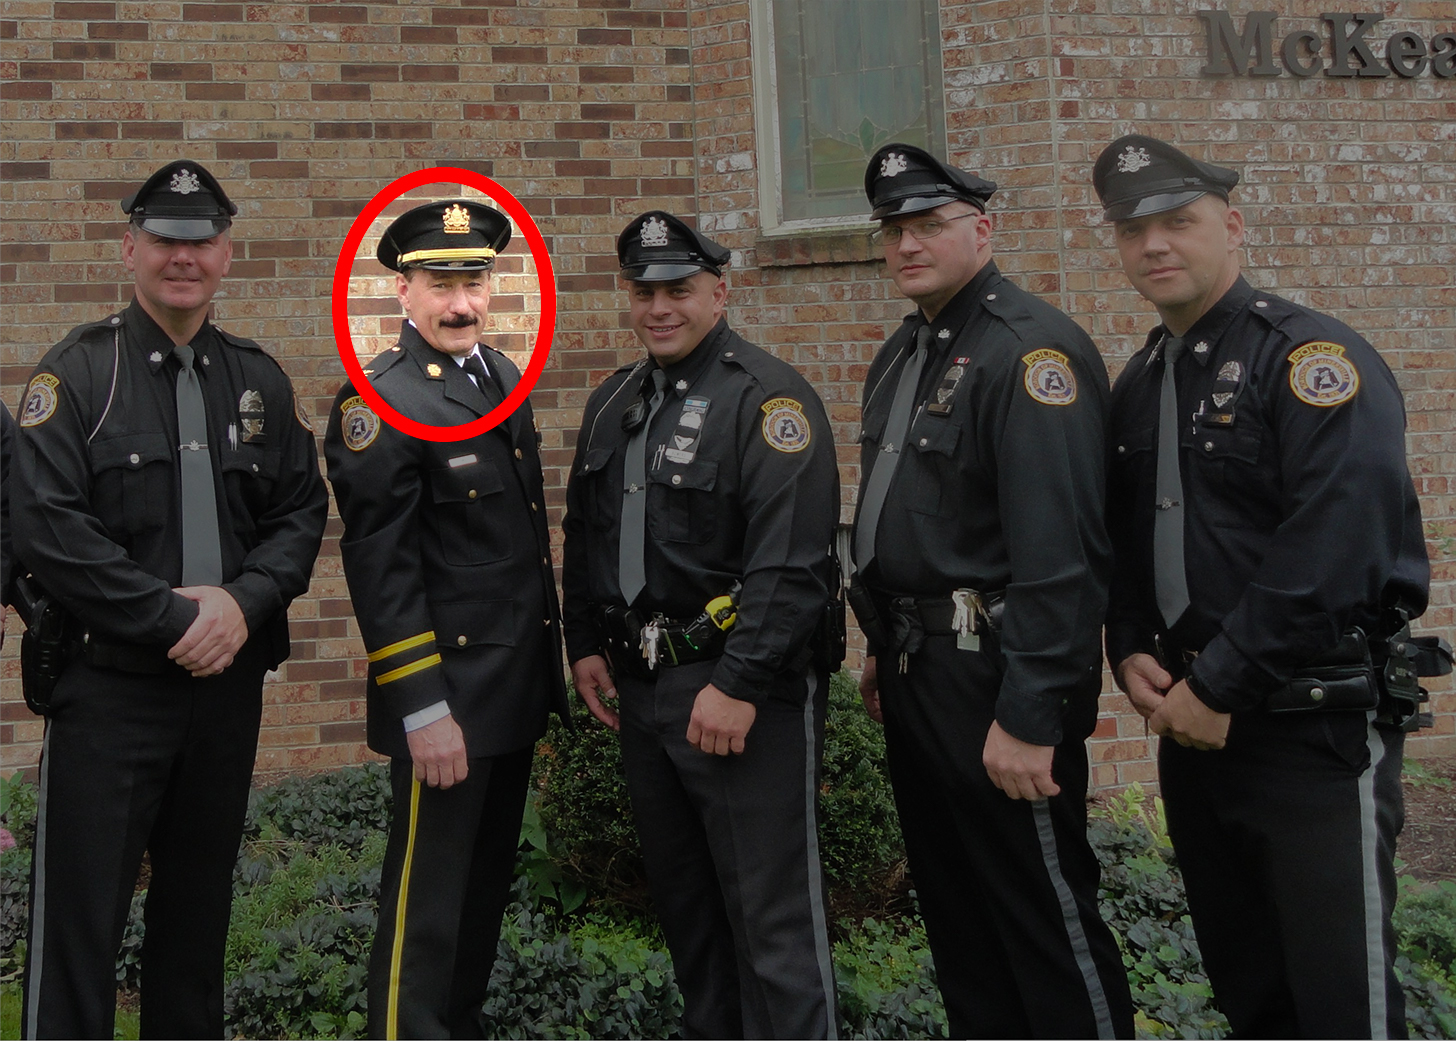 Image of 5 police officers from Minersville, Pennsylvania. They are posing for the camera. Highlighted in a red circle is Minersville Police Chief Michael Combs.